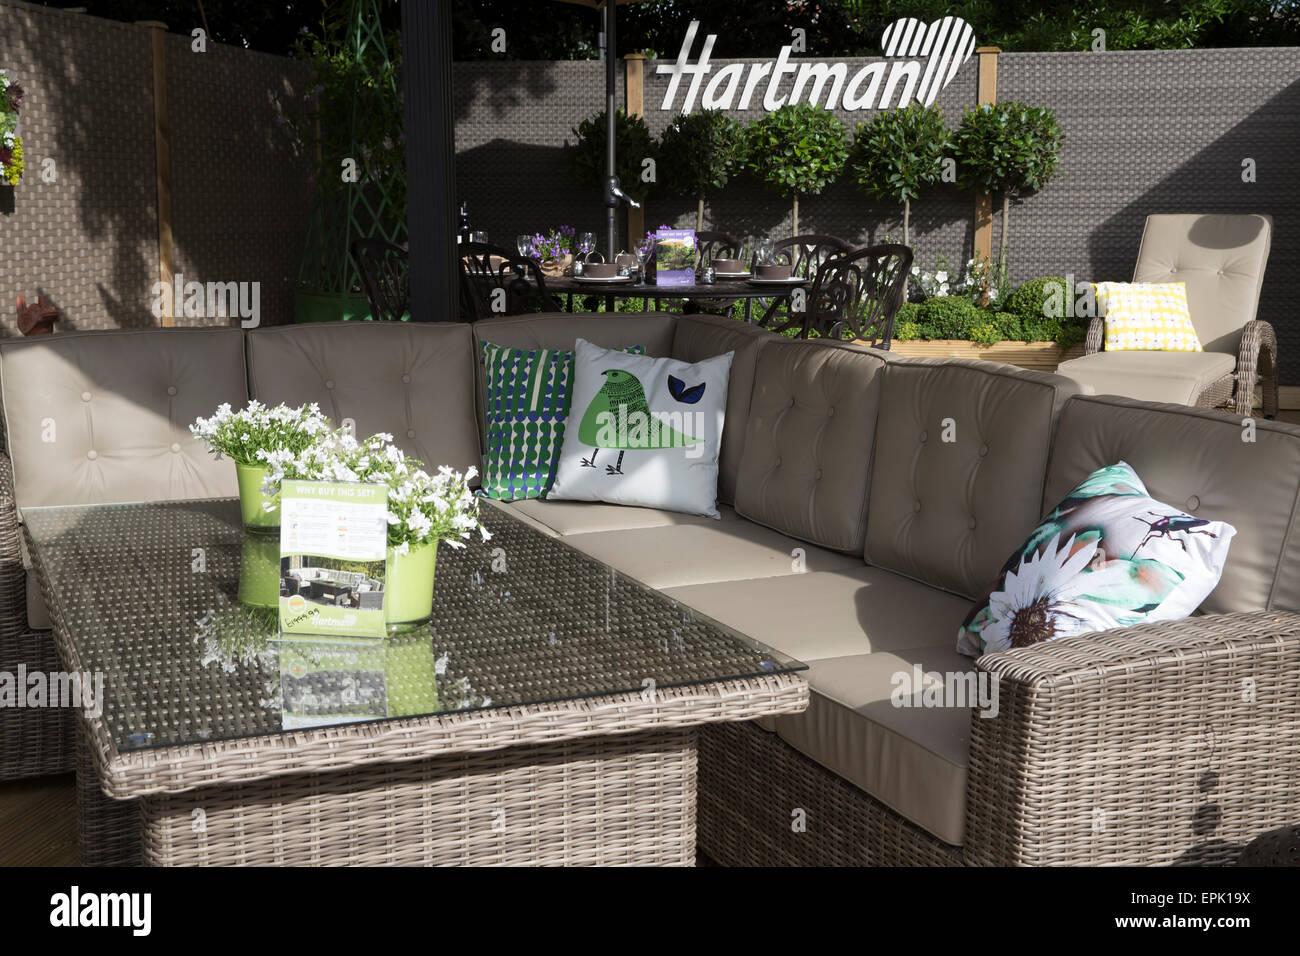 Merveilleux Chelsea, London, UK. 19th May, 2015. Hartman Garden Furniture For Sale At  Chelsea Flower Show 2015 Credit: Keith Larby/Alamy Live News